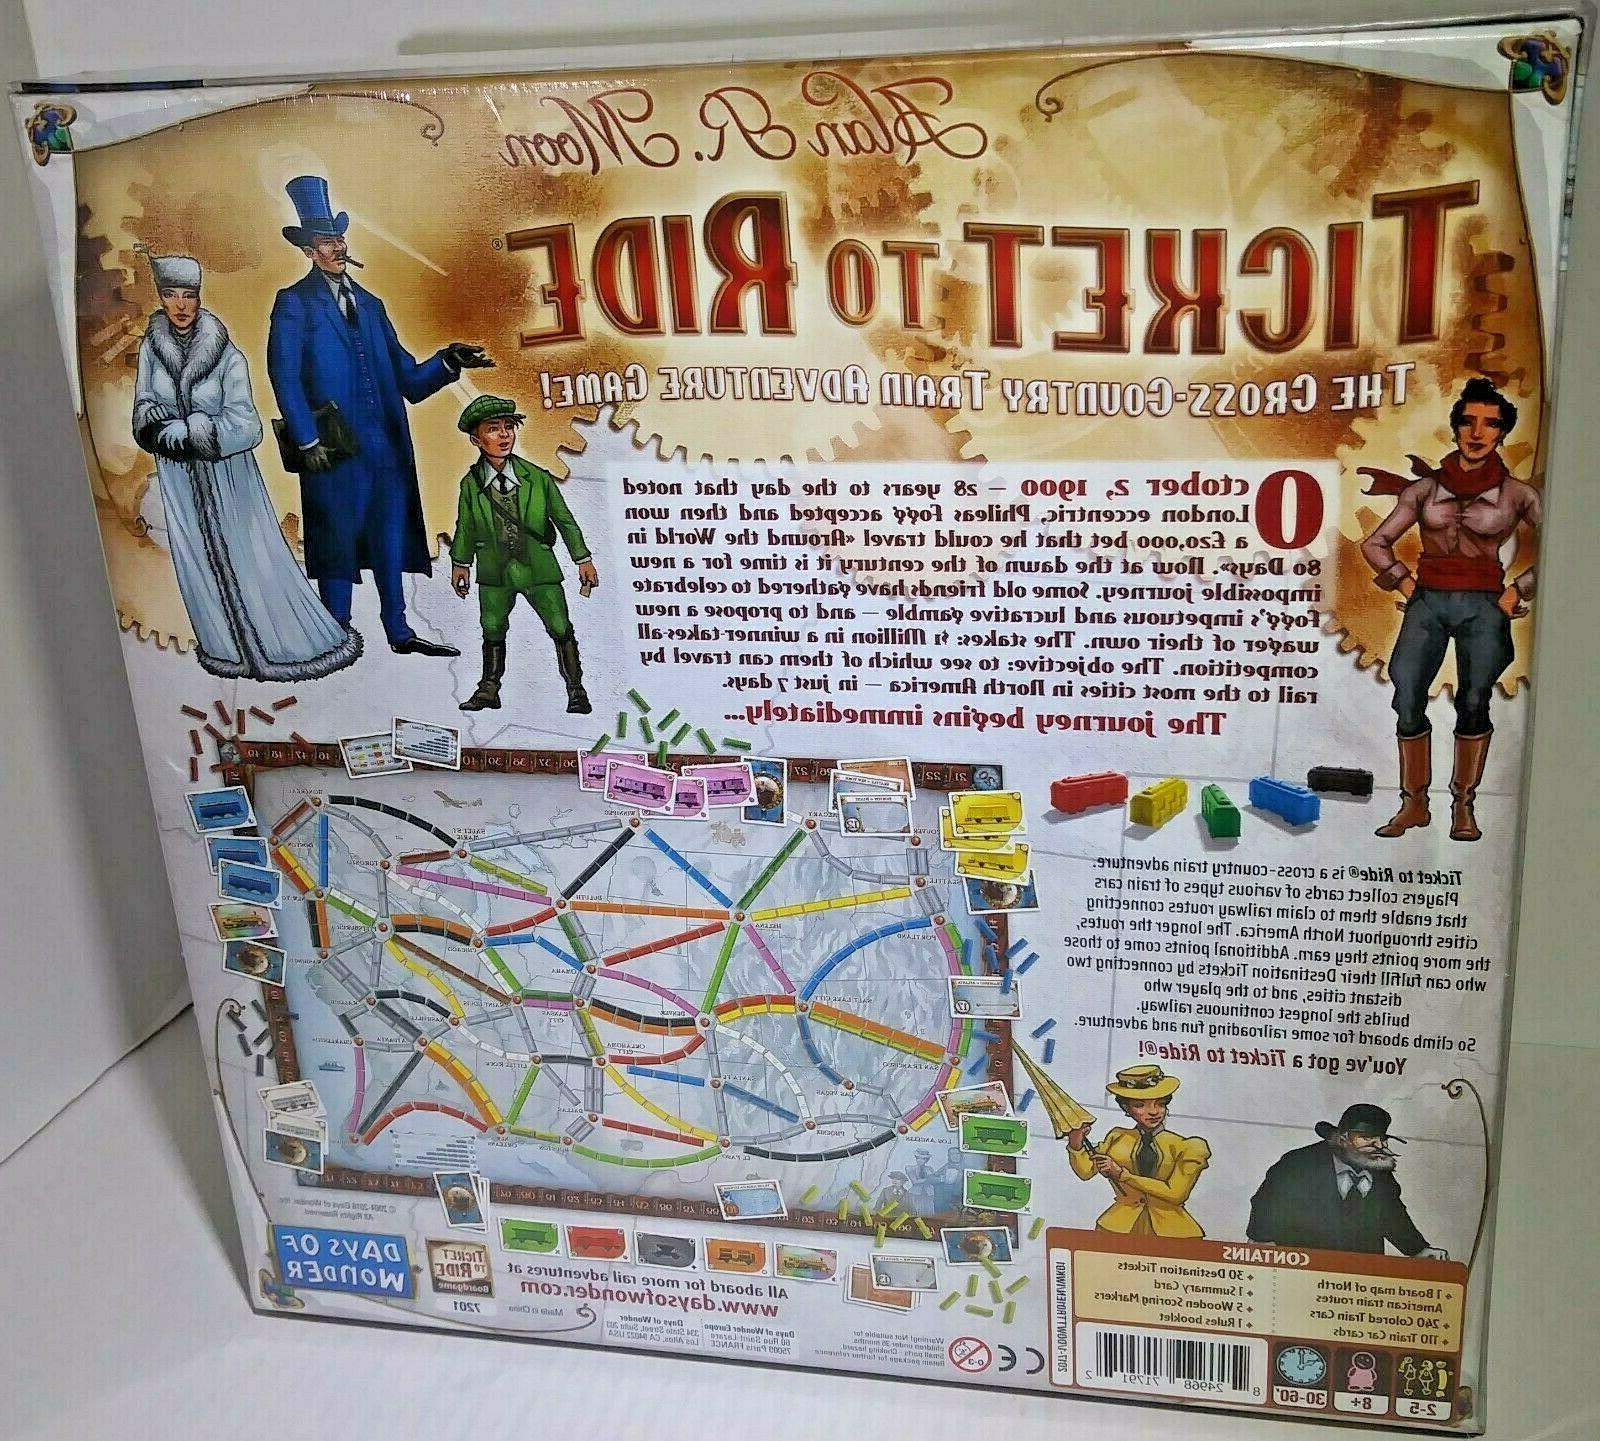 New Days of Ticket to Ride Game Cross-Country Adventure